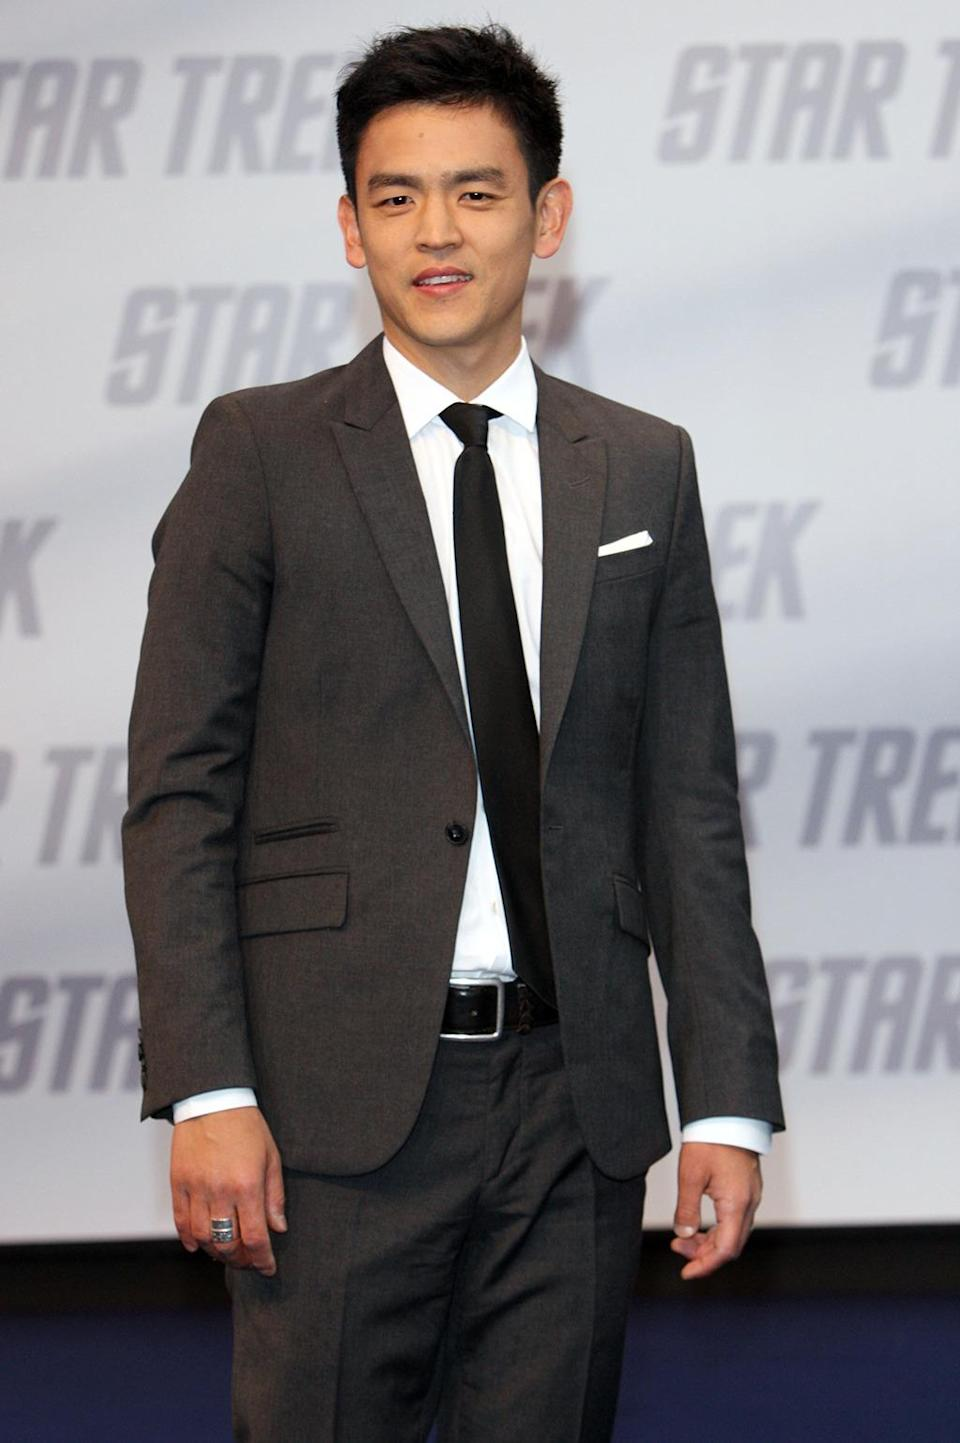 <p>John Cho in Berlin on April 16, 2009. Cho took on the role of Hikaru Sulu in the reboot. <i>(Photo: Franziska Krug/Getty Images)</i></p>